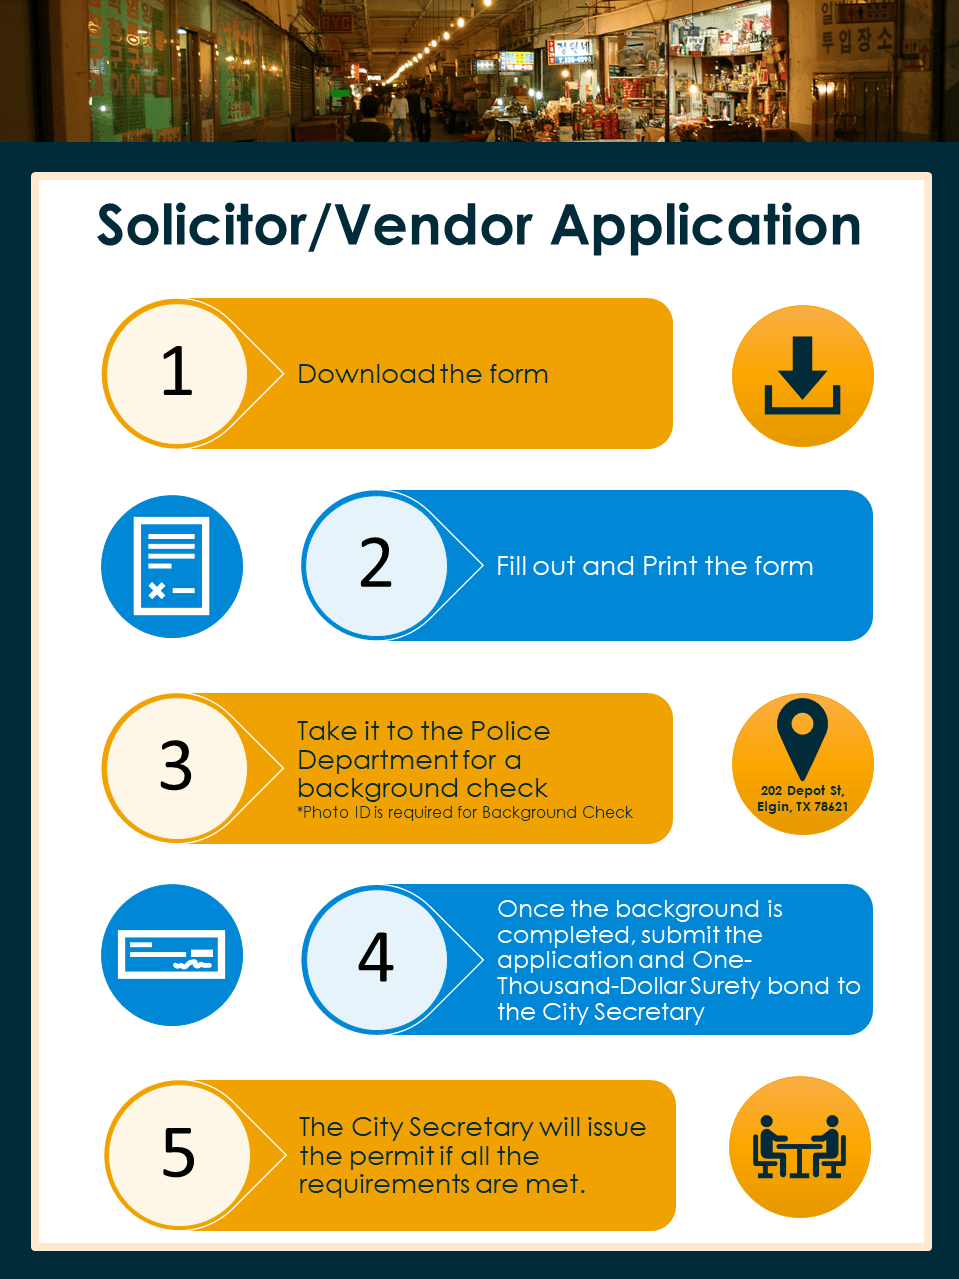 Solicitor/Vendor Permits Application Process